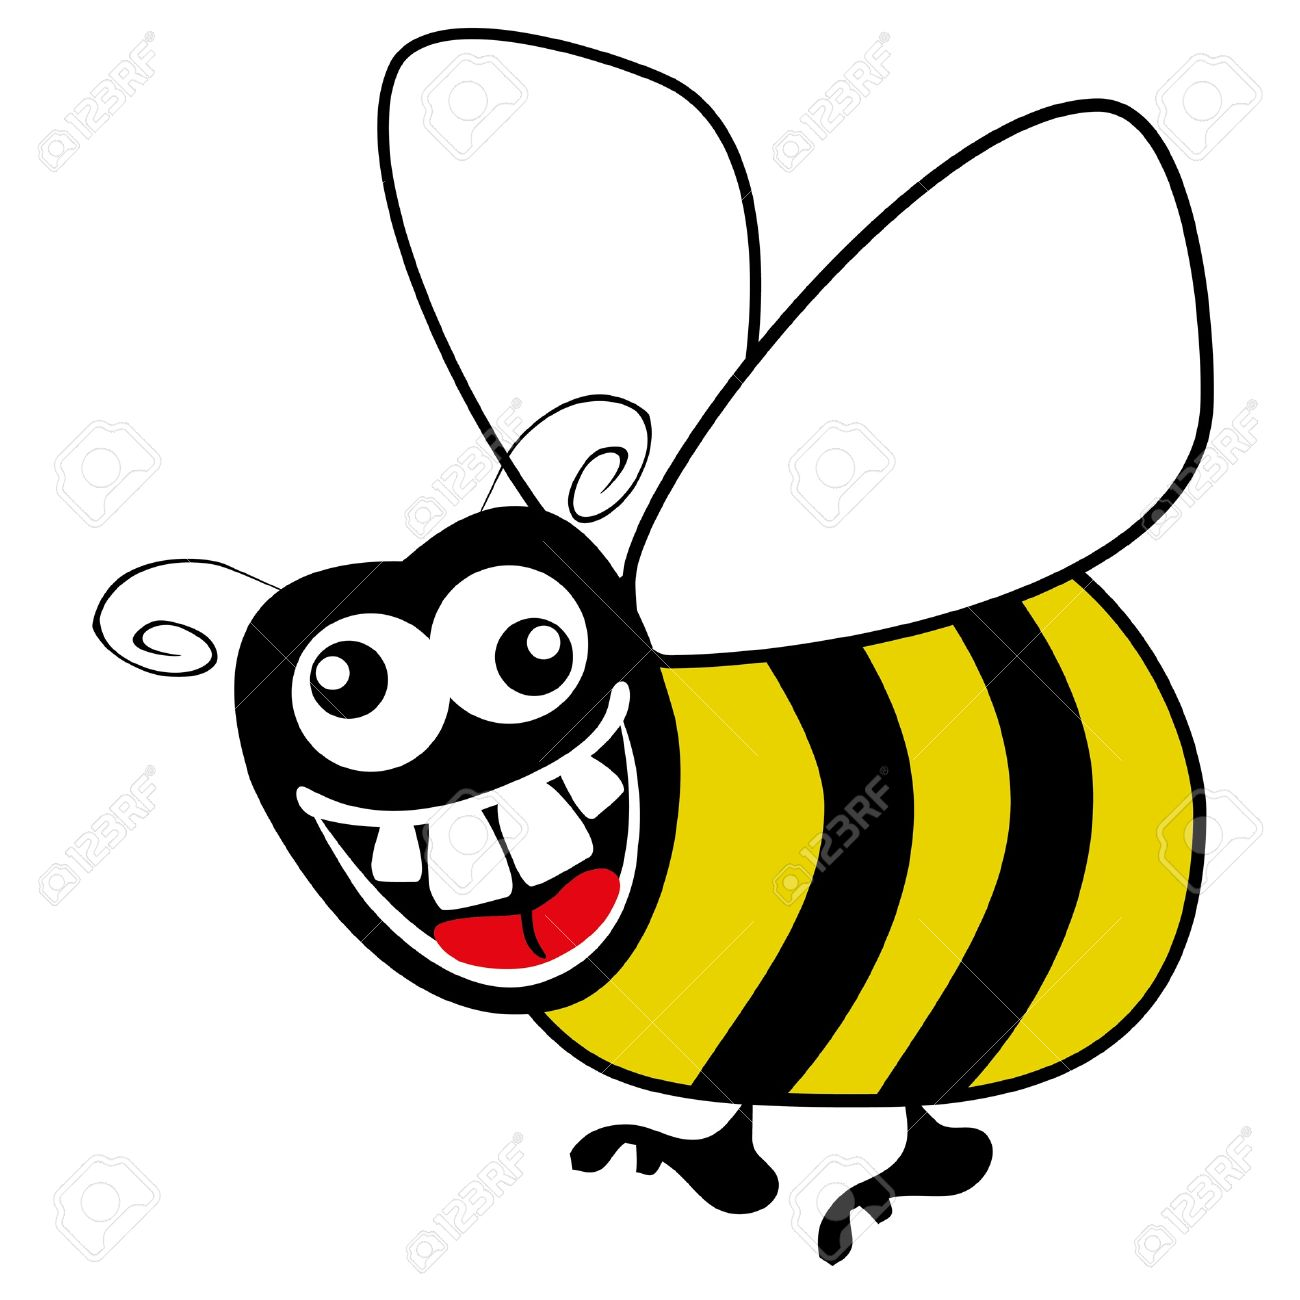 Crazy Hungry Bumble Bee Vector Royalty Free Cliparts Vectors And